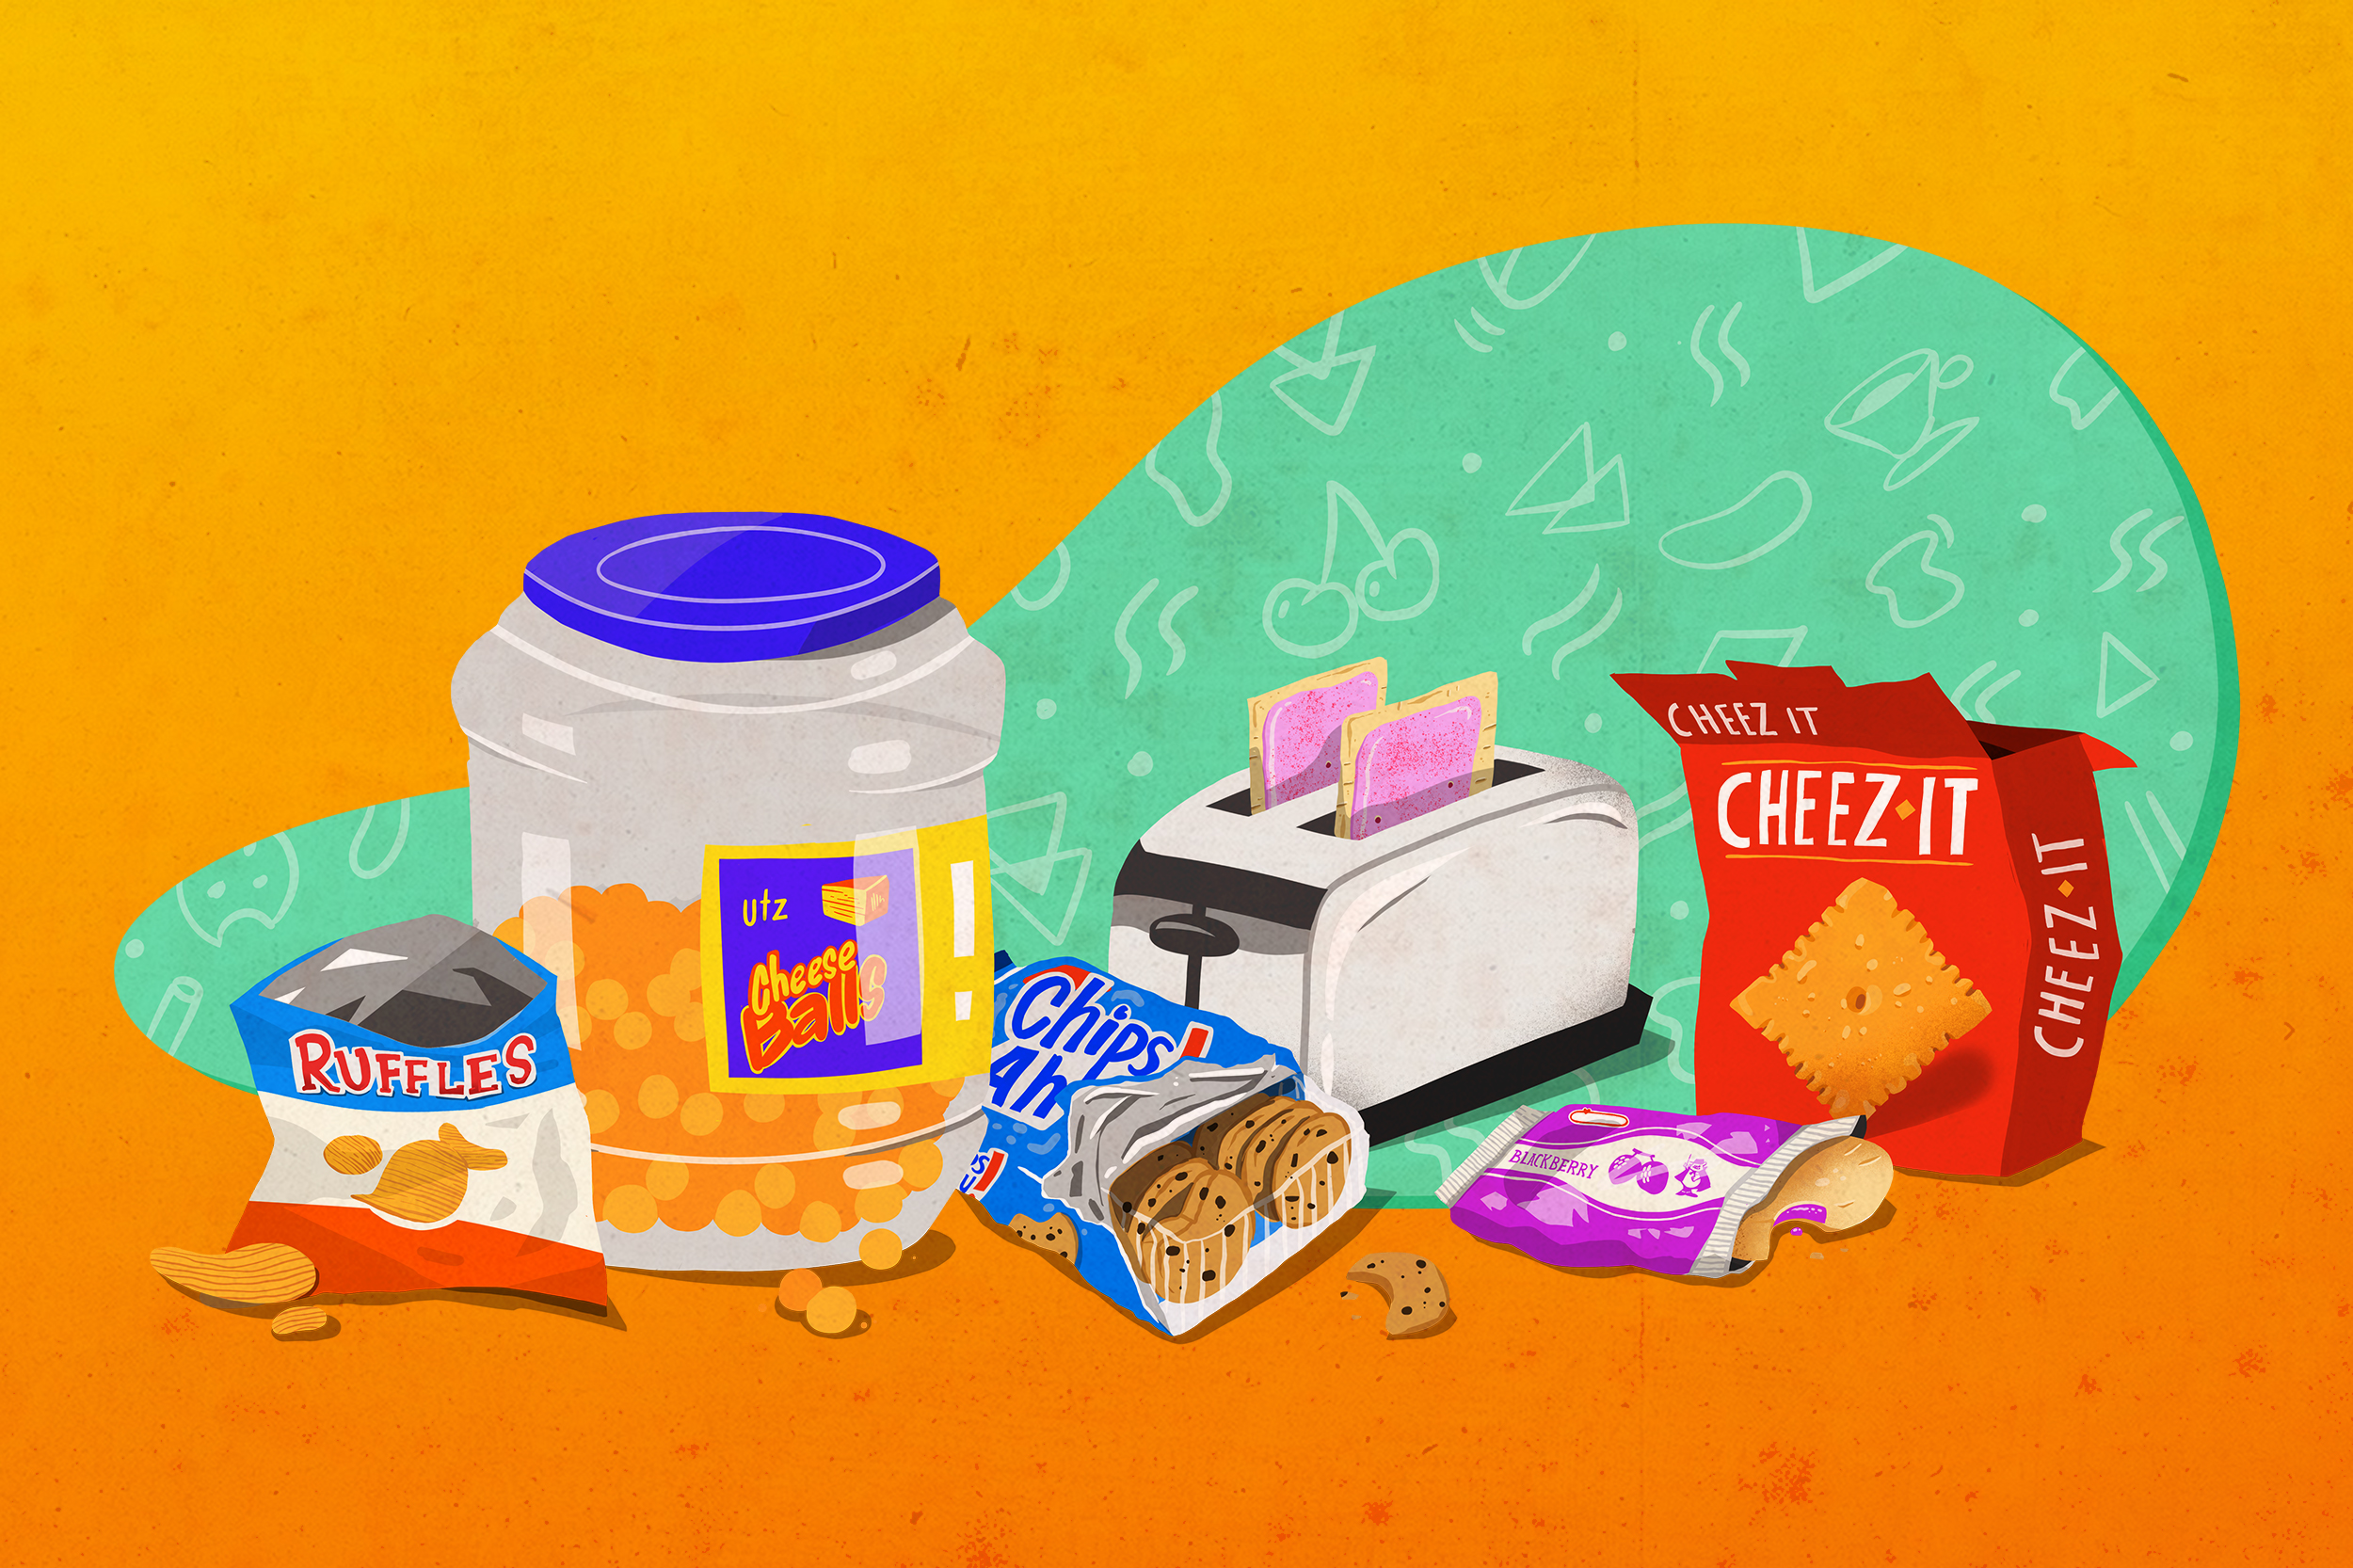 Illustration of Ruffles chip bag, big plastic container of cheese balls, Chips Ahoy cookies, a toaster oven with two Pop-Tarts popping out, and a box of Cheez-Its.